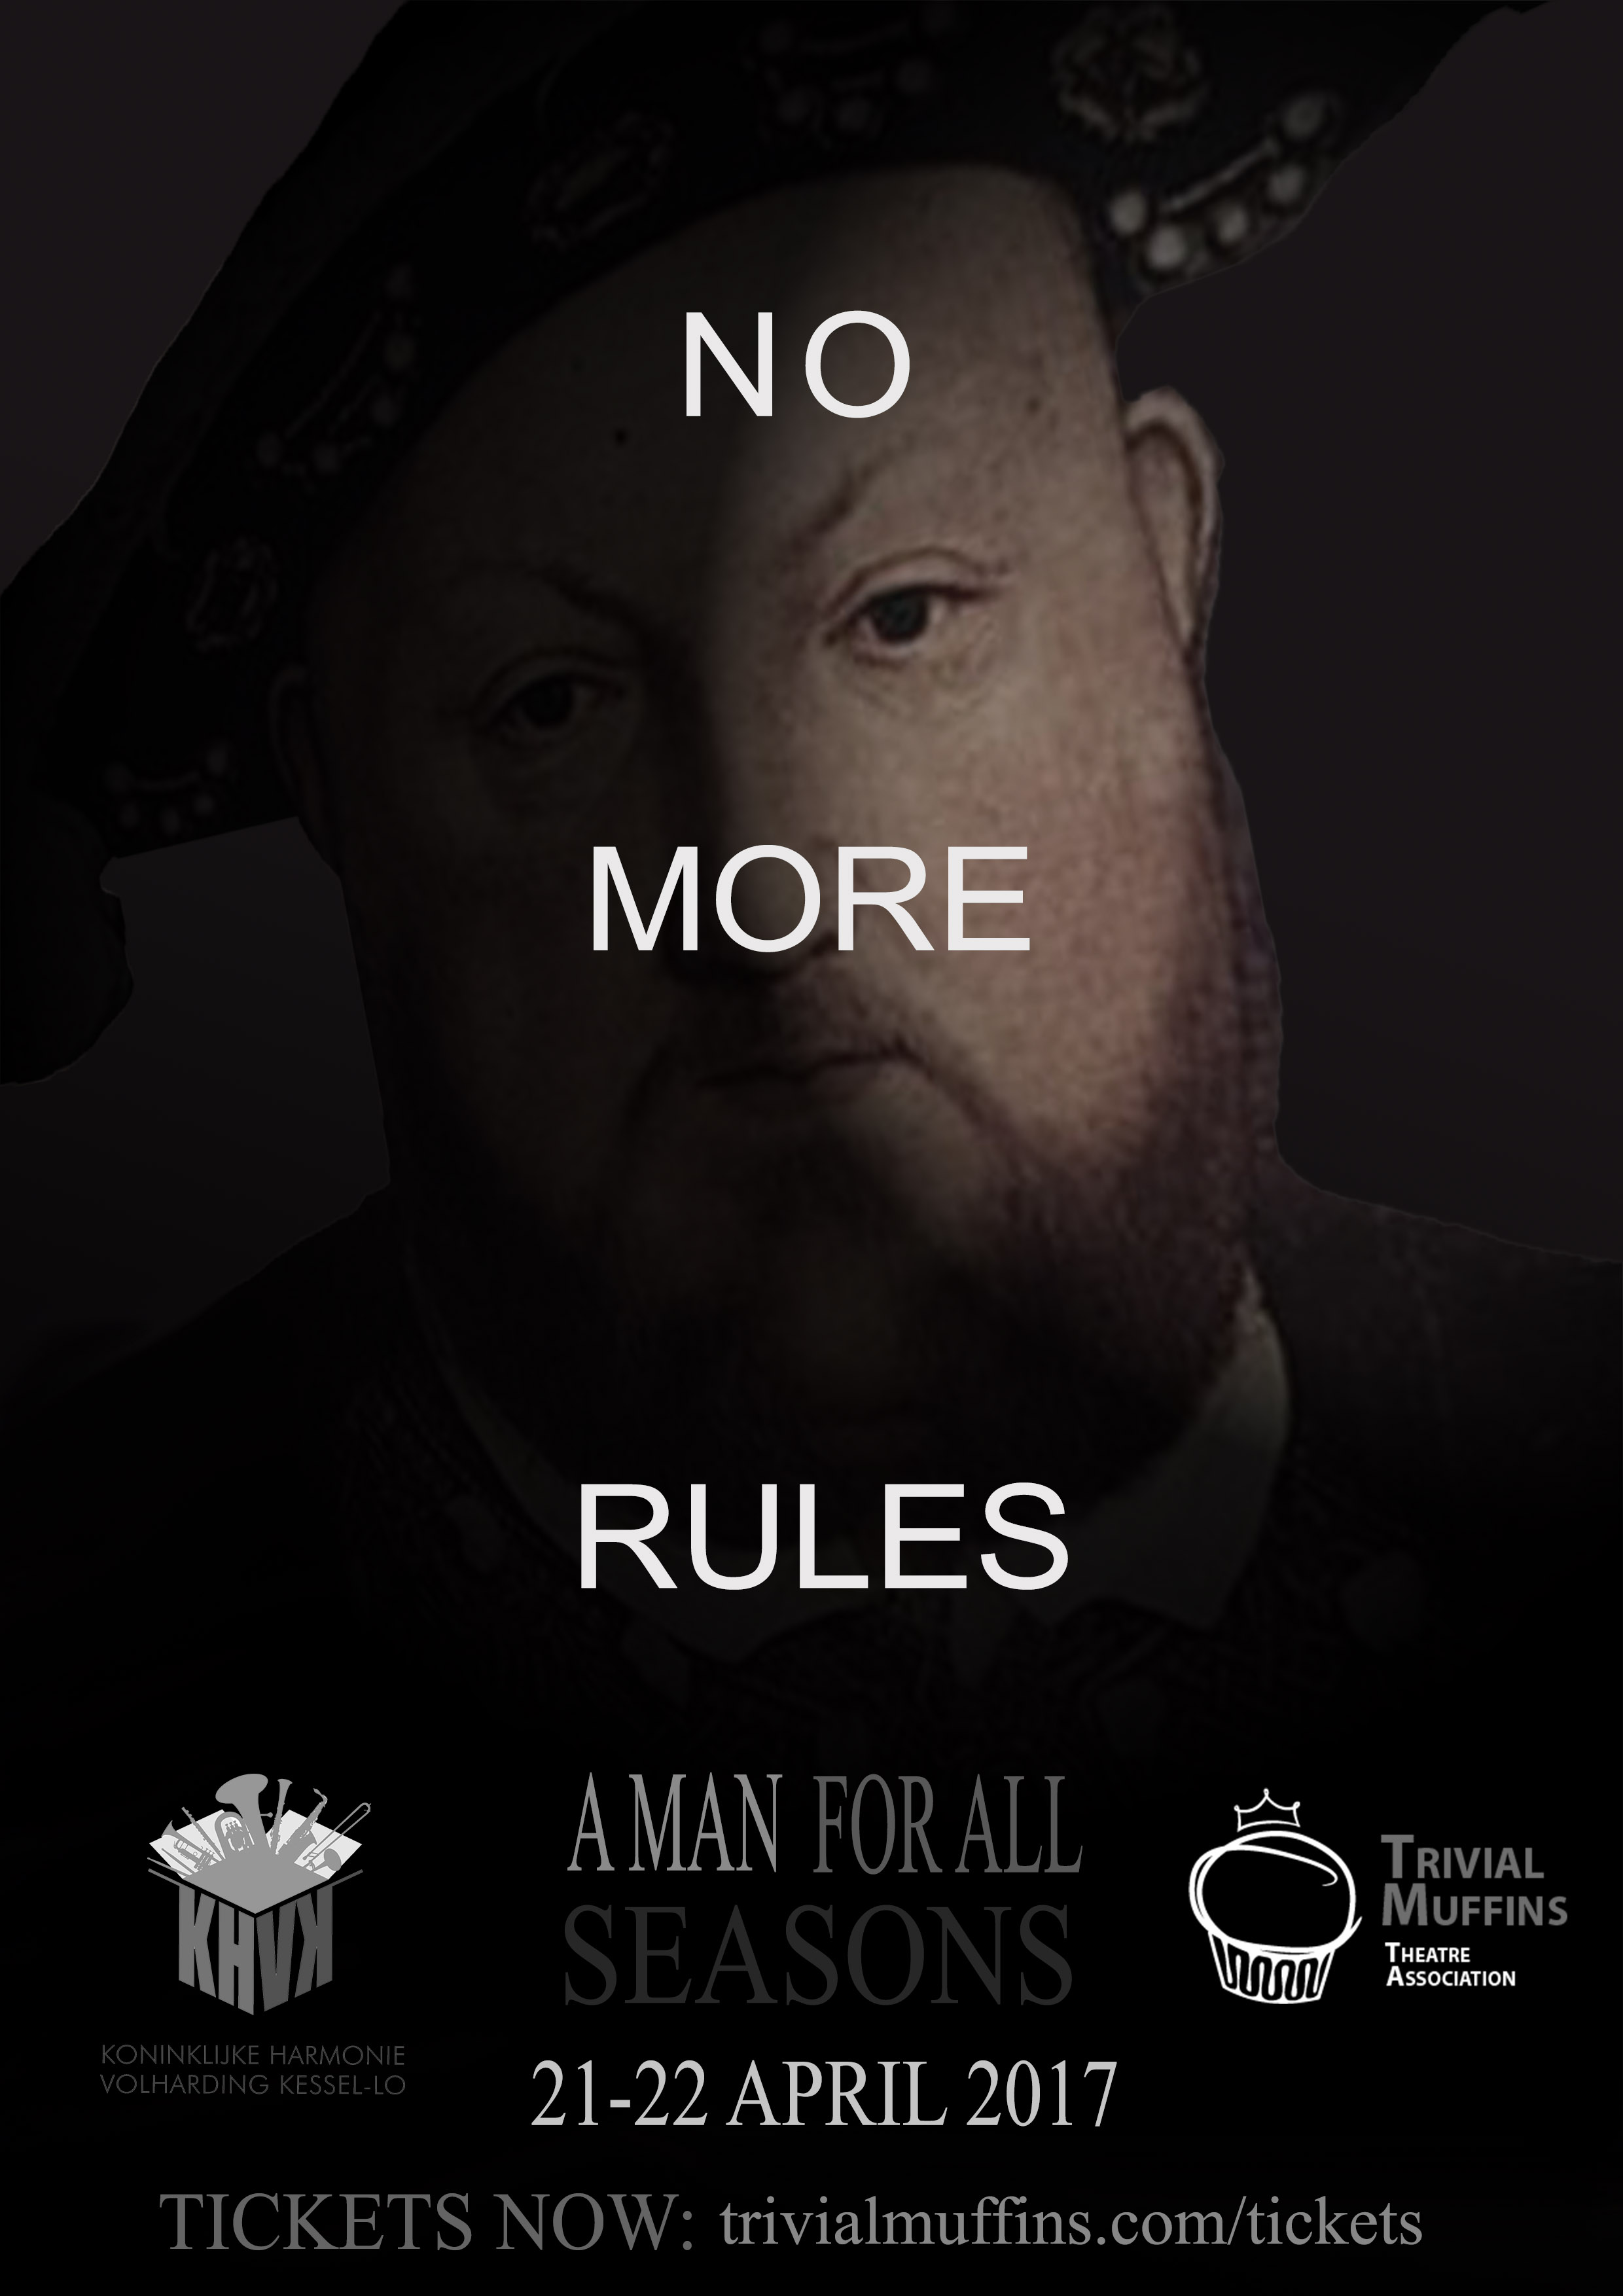 A man for all seasons poster 2